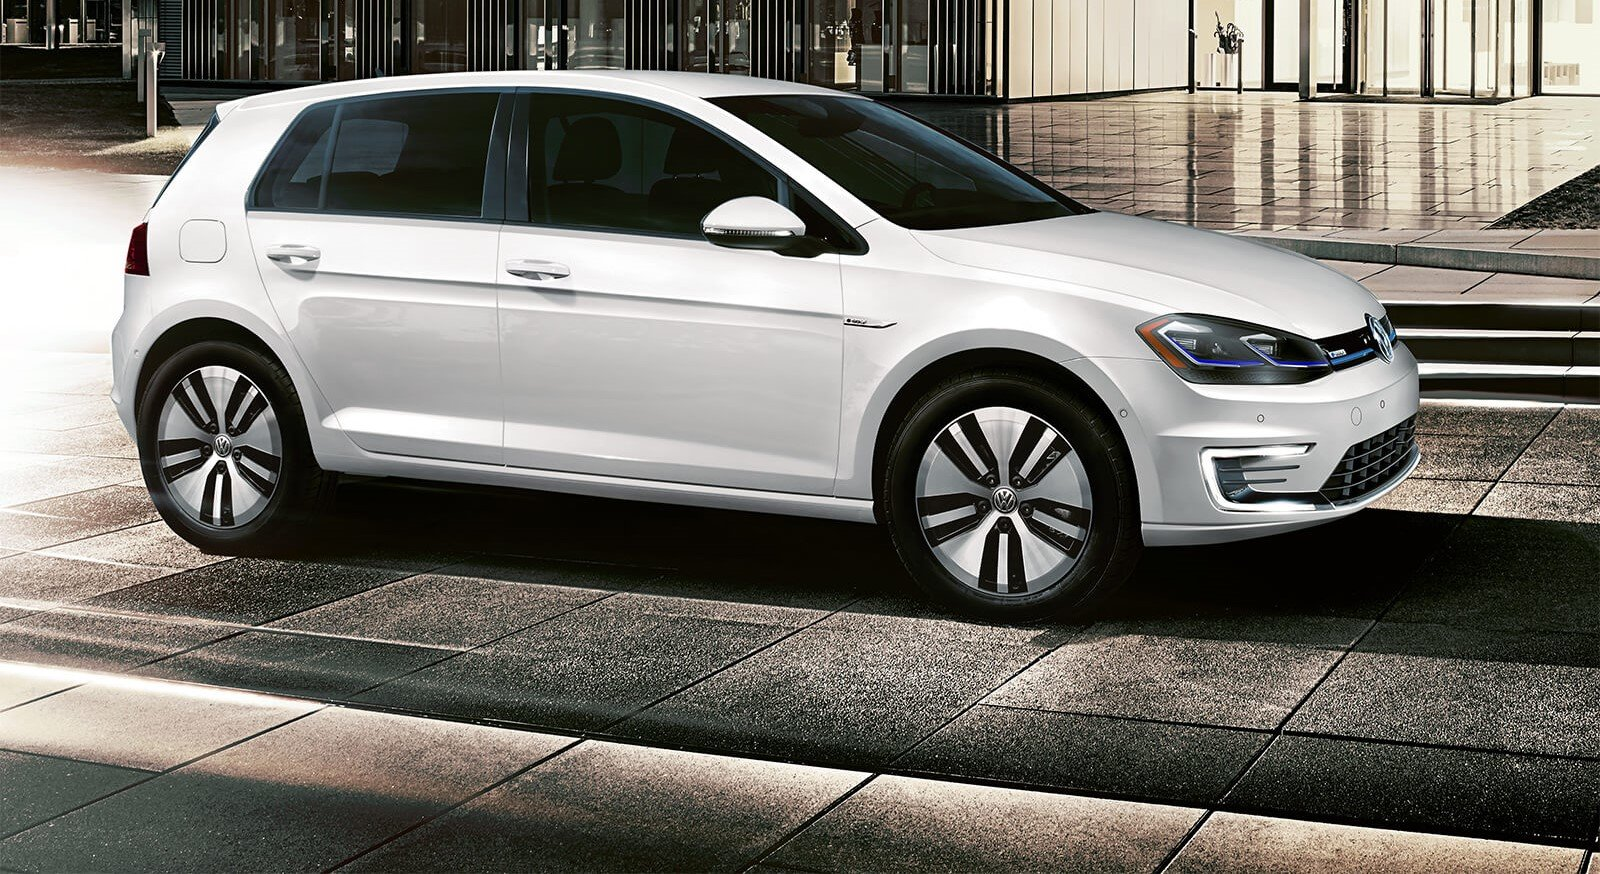 Clear Lake Vw >> Vw E Golf Deals Offers Prices Houston Tx